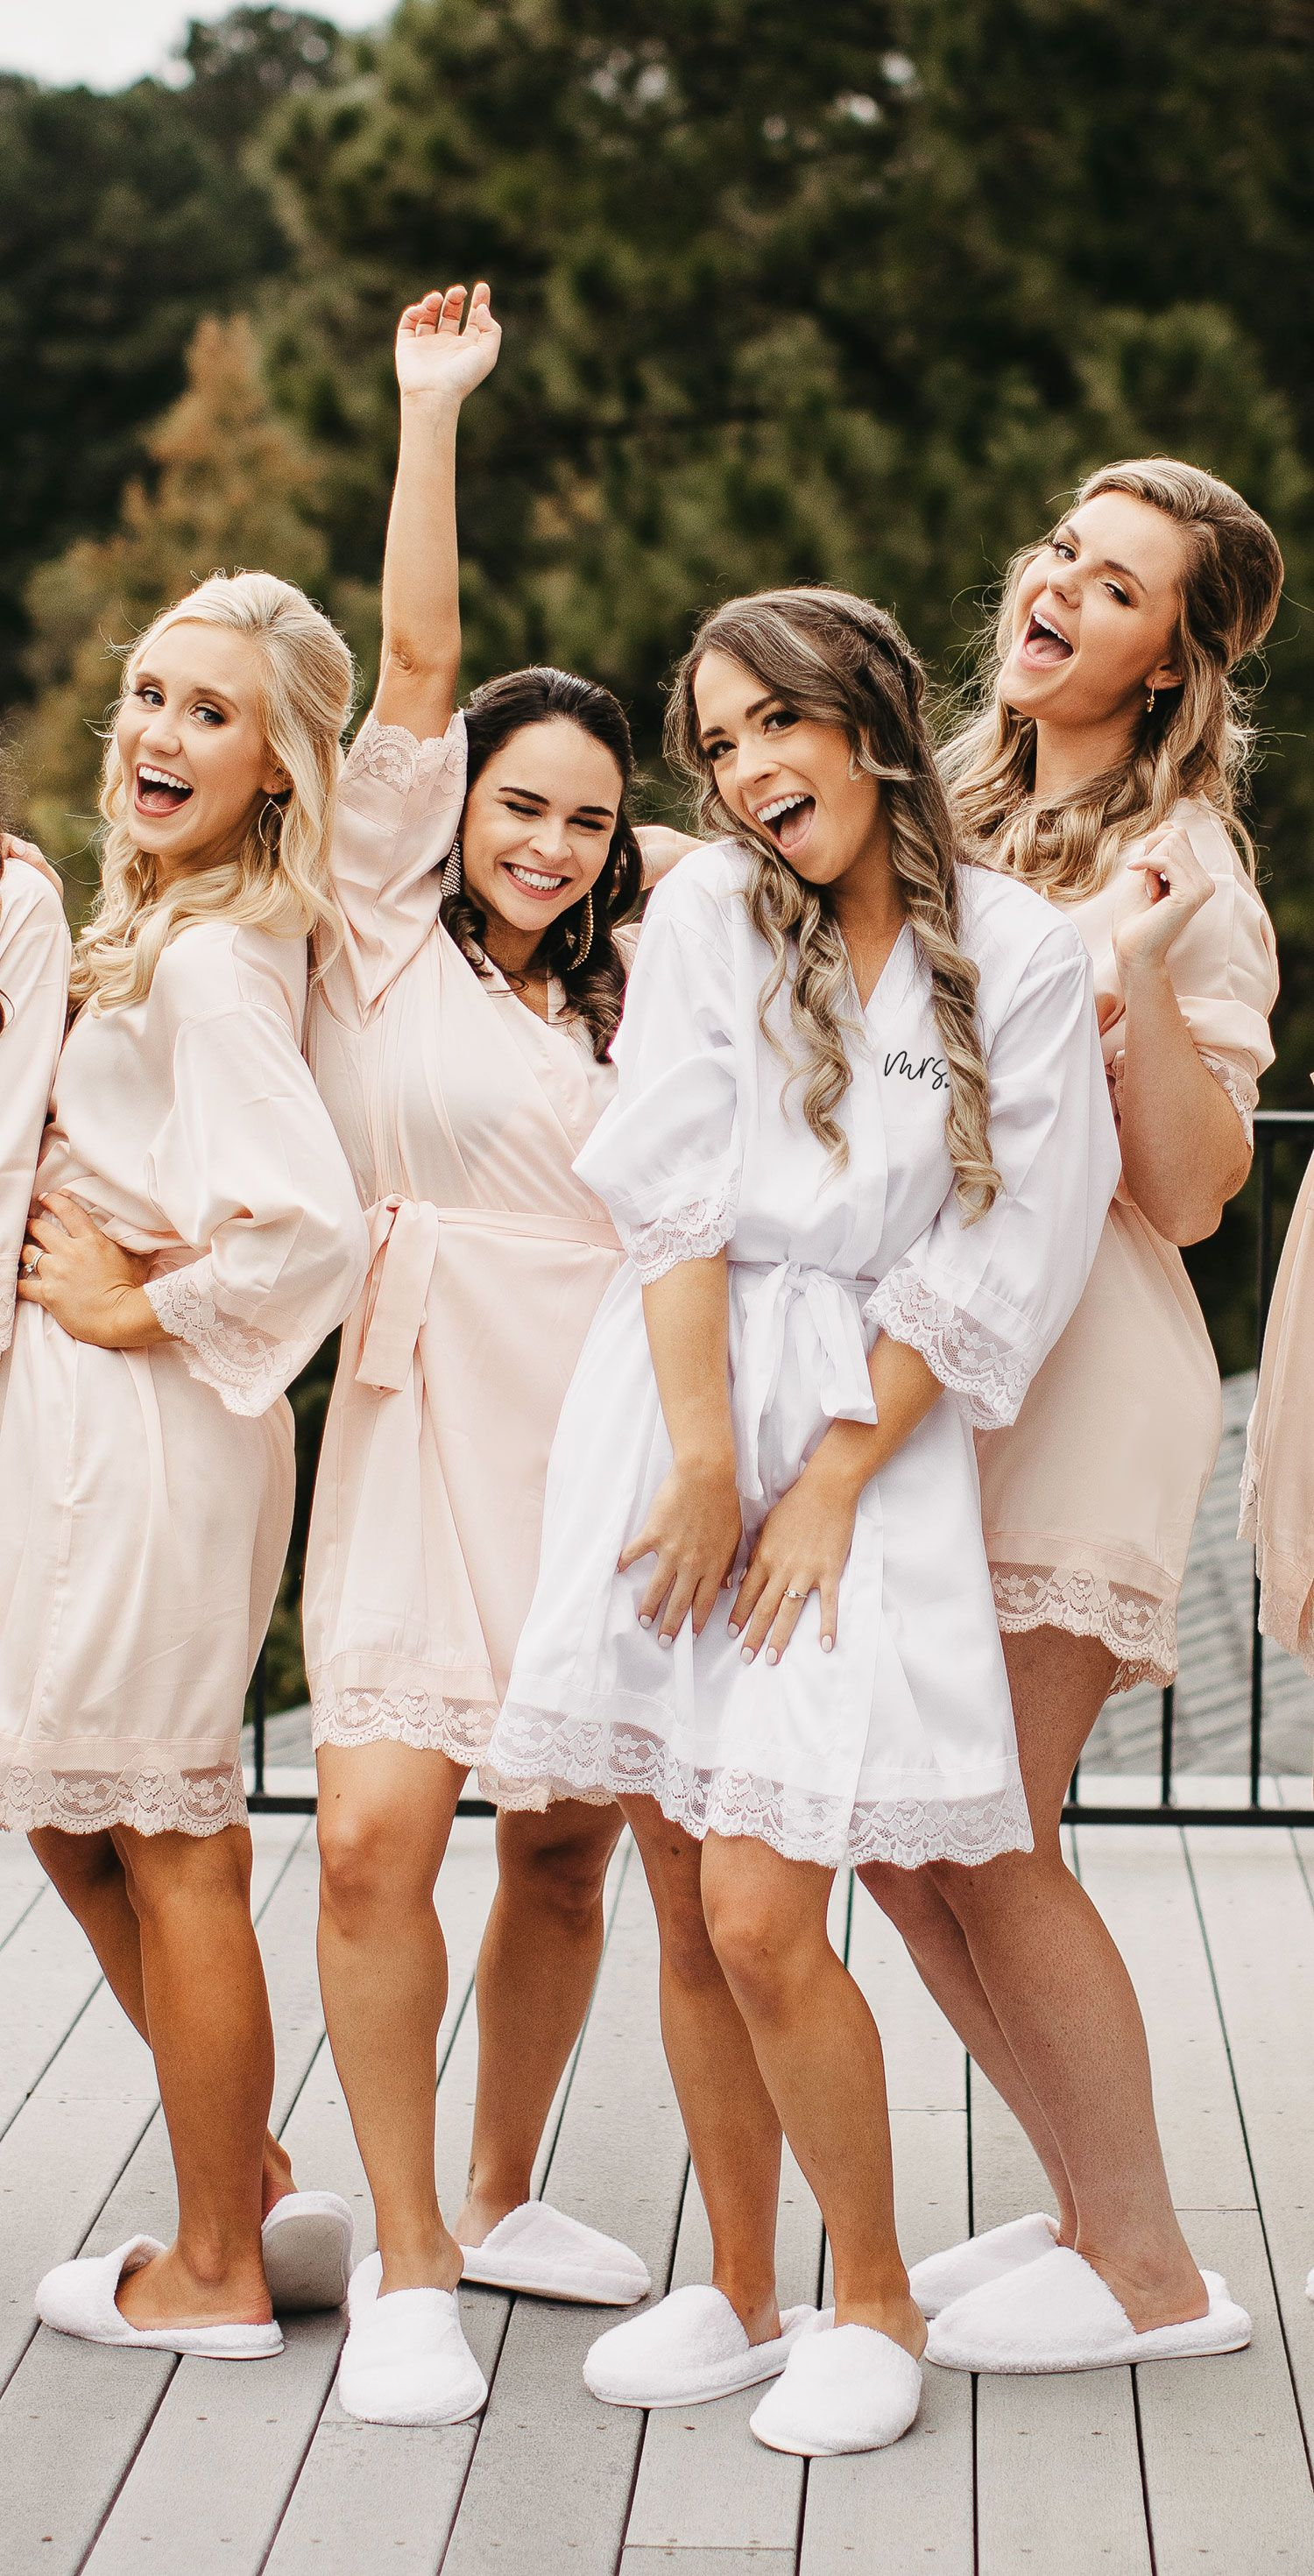 01d3eada758b Bride & Bridesmaid Robes for Getting Ready on Your Wedding Day - Pretty Satin  Lace Robes are comfy & cute all in one.